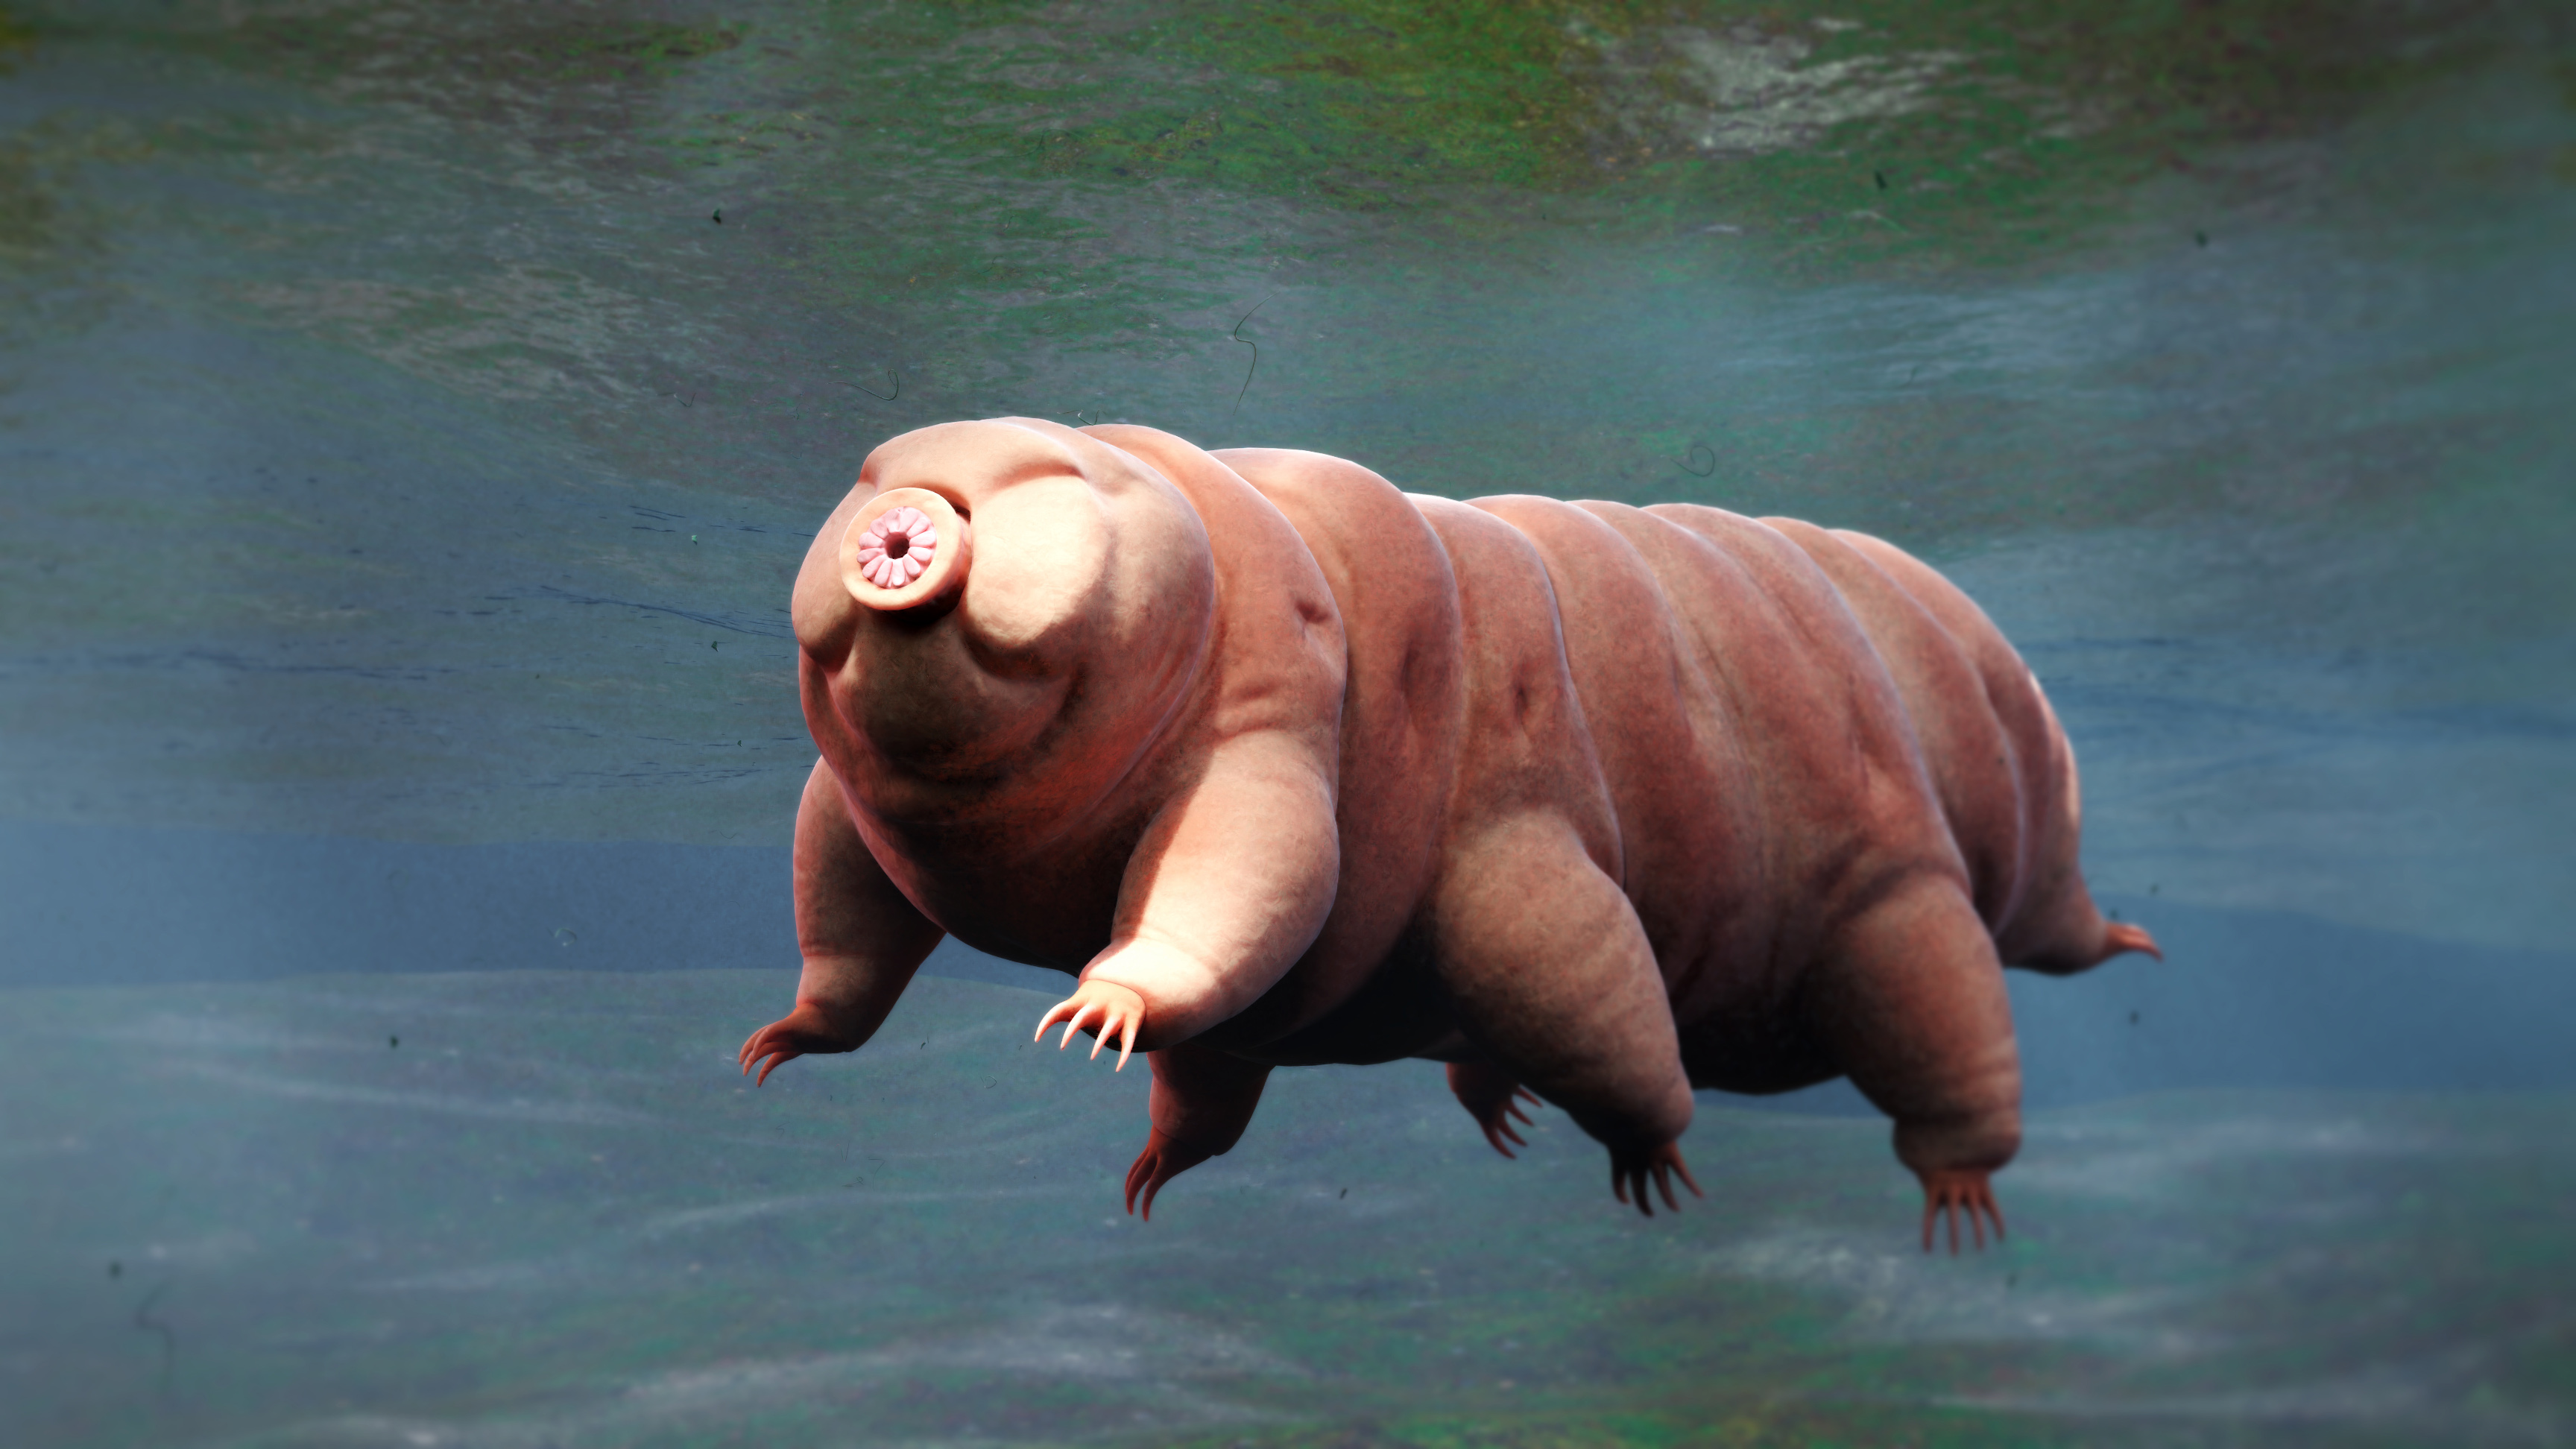 Cracking How 'Water Bears' Survive the Extremes